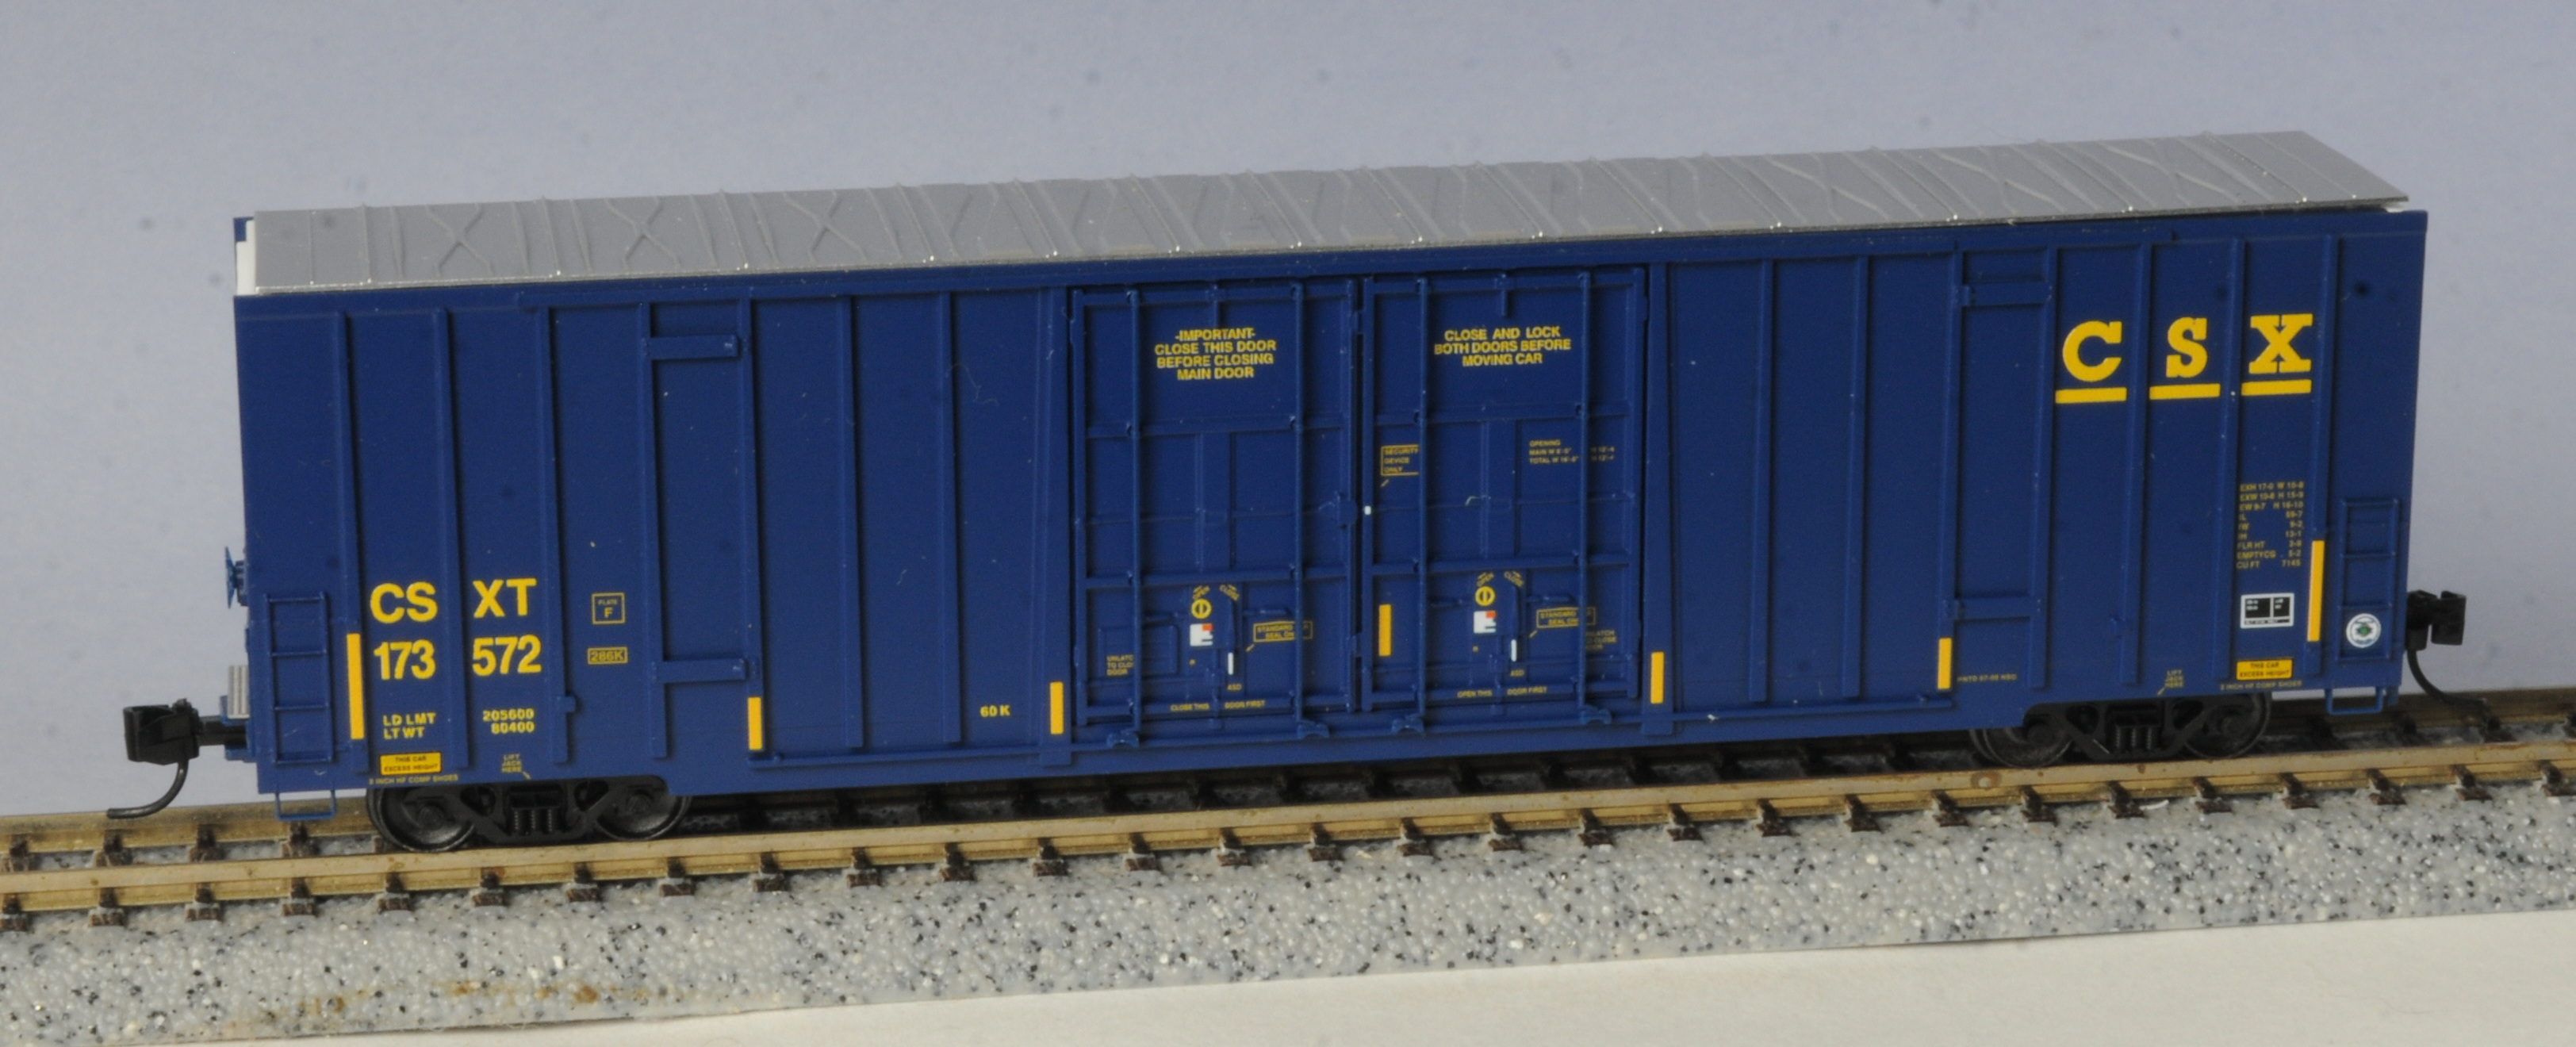 N Scale - Micro-Trains - 123 52 030 - Boxcar, 60 Foot, NSC Excess Height - CSX Transportation - 173572